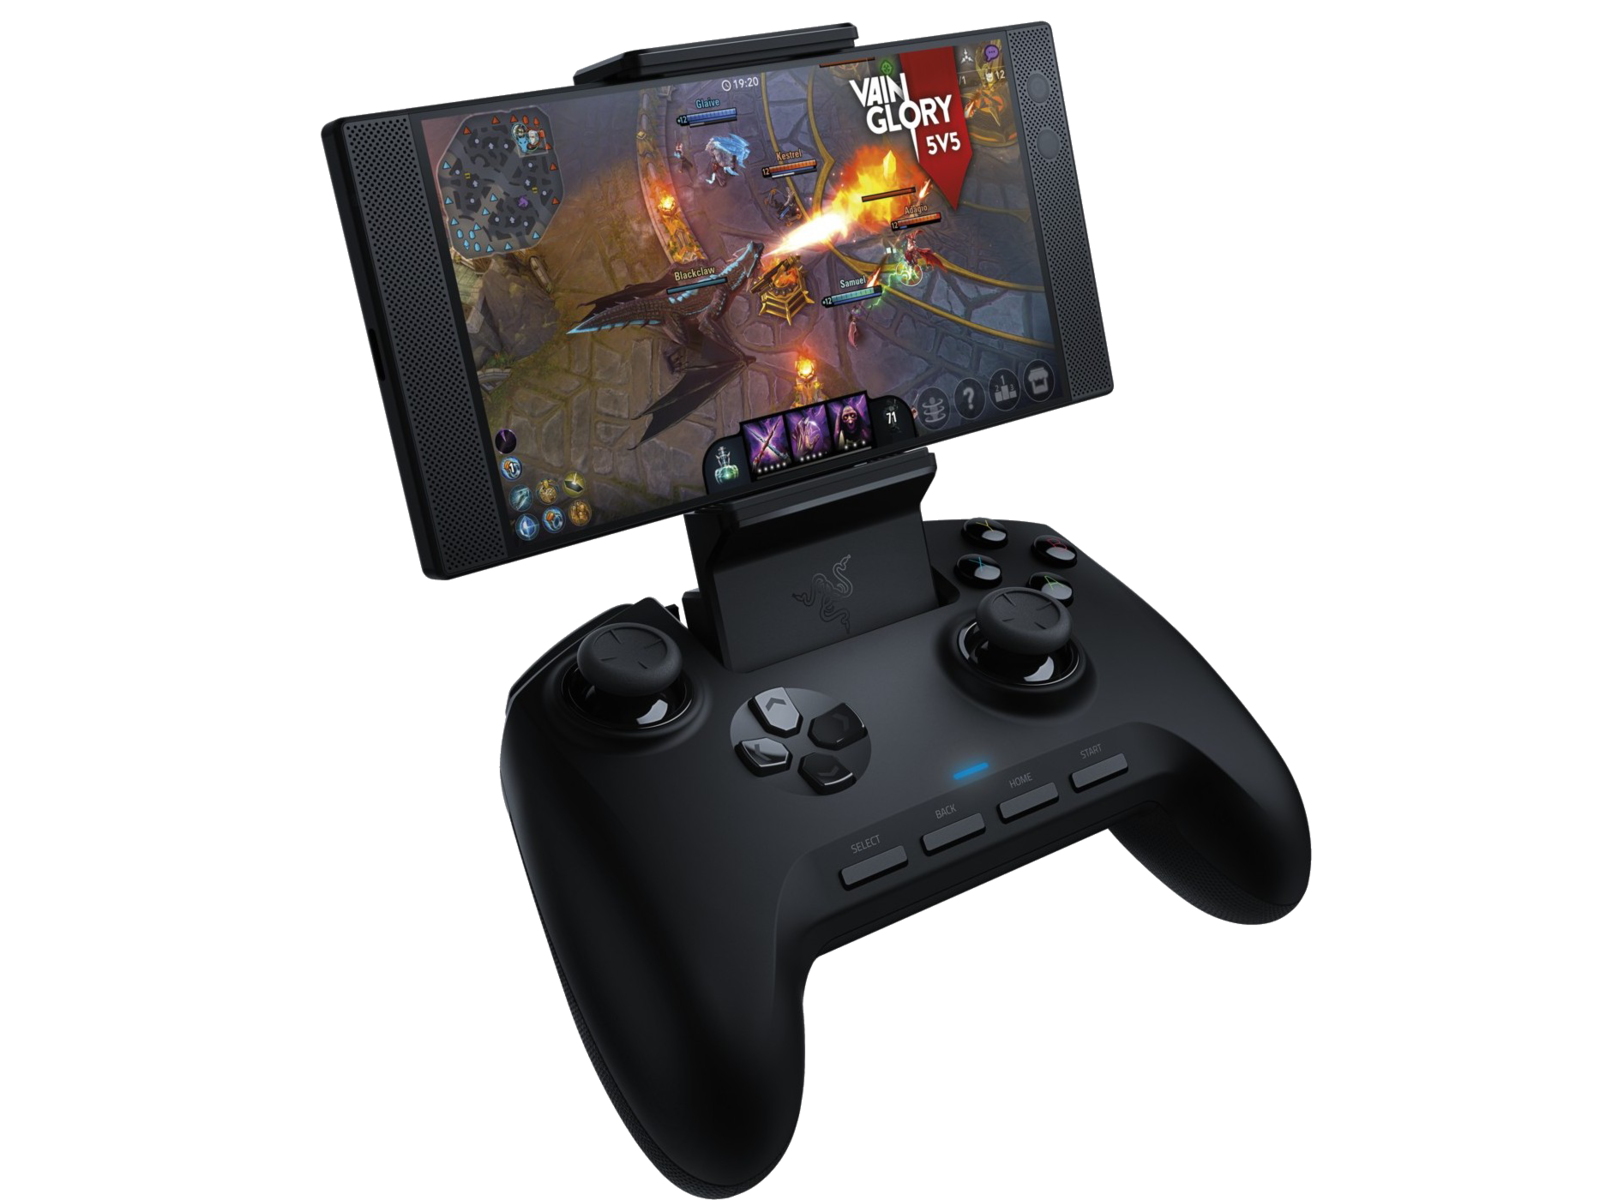 Razer Raiju Mobile Controller Review Notebookcheck Net Reviews Read on for our thoughts on razer's new smartphone accessory. razer raiju mobile controller review